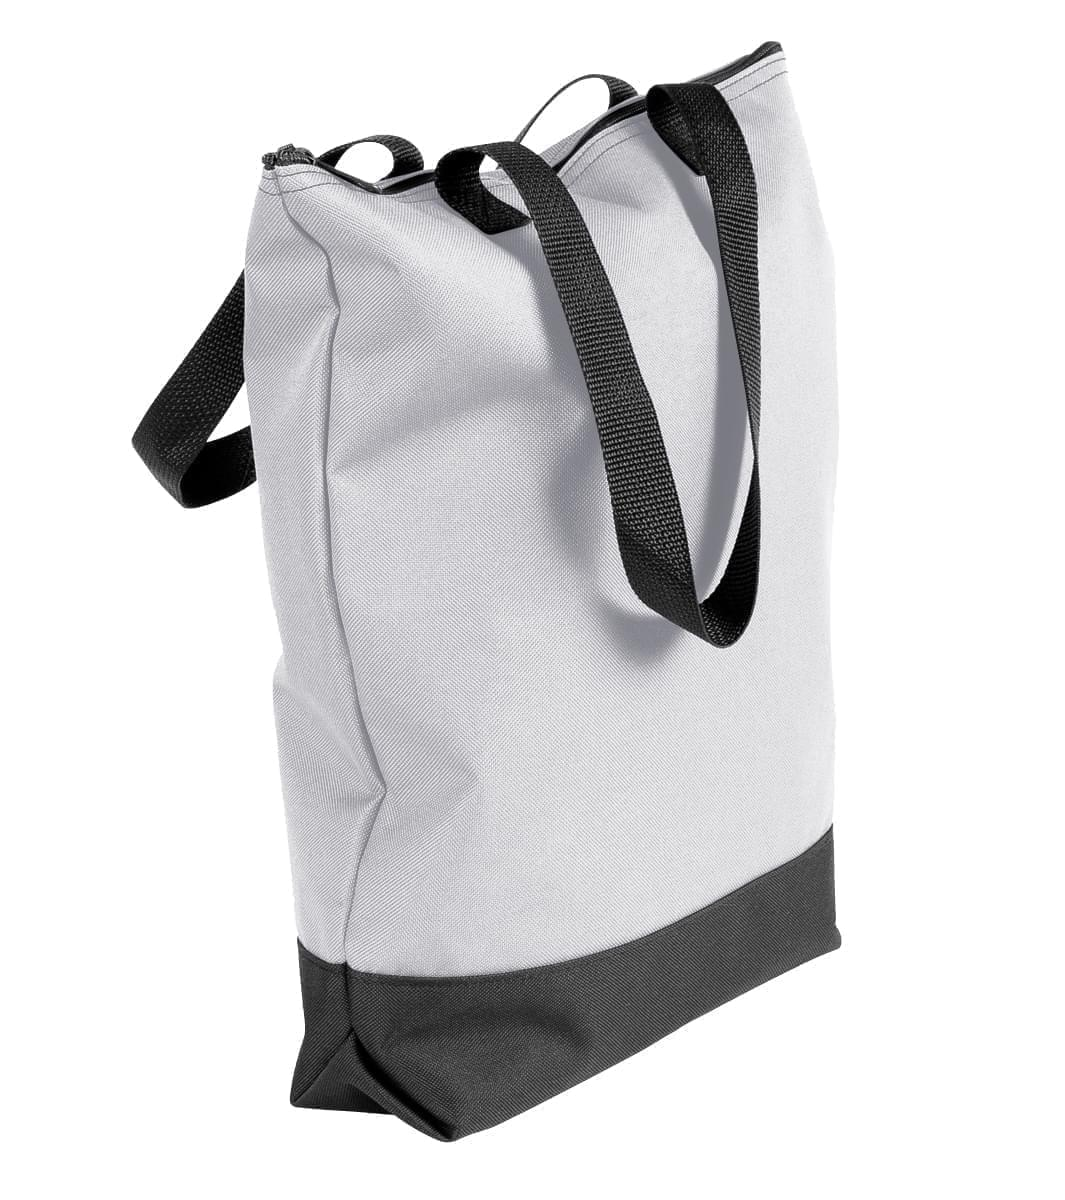 USA Made Poly Notebook Tote Bags, White-Black, 1AAMX1UA3R